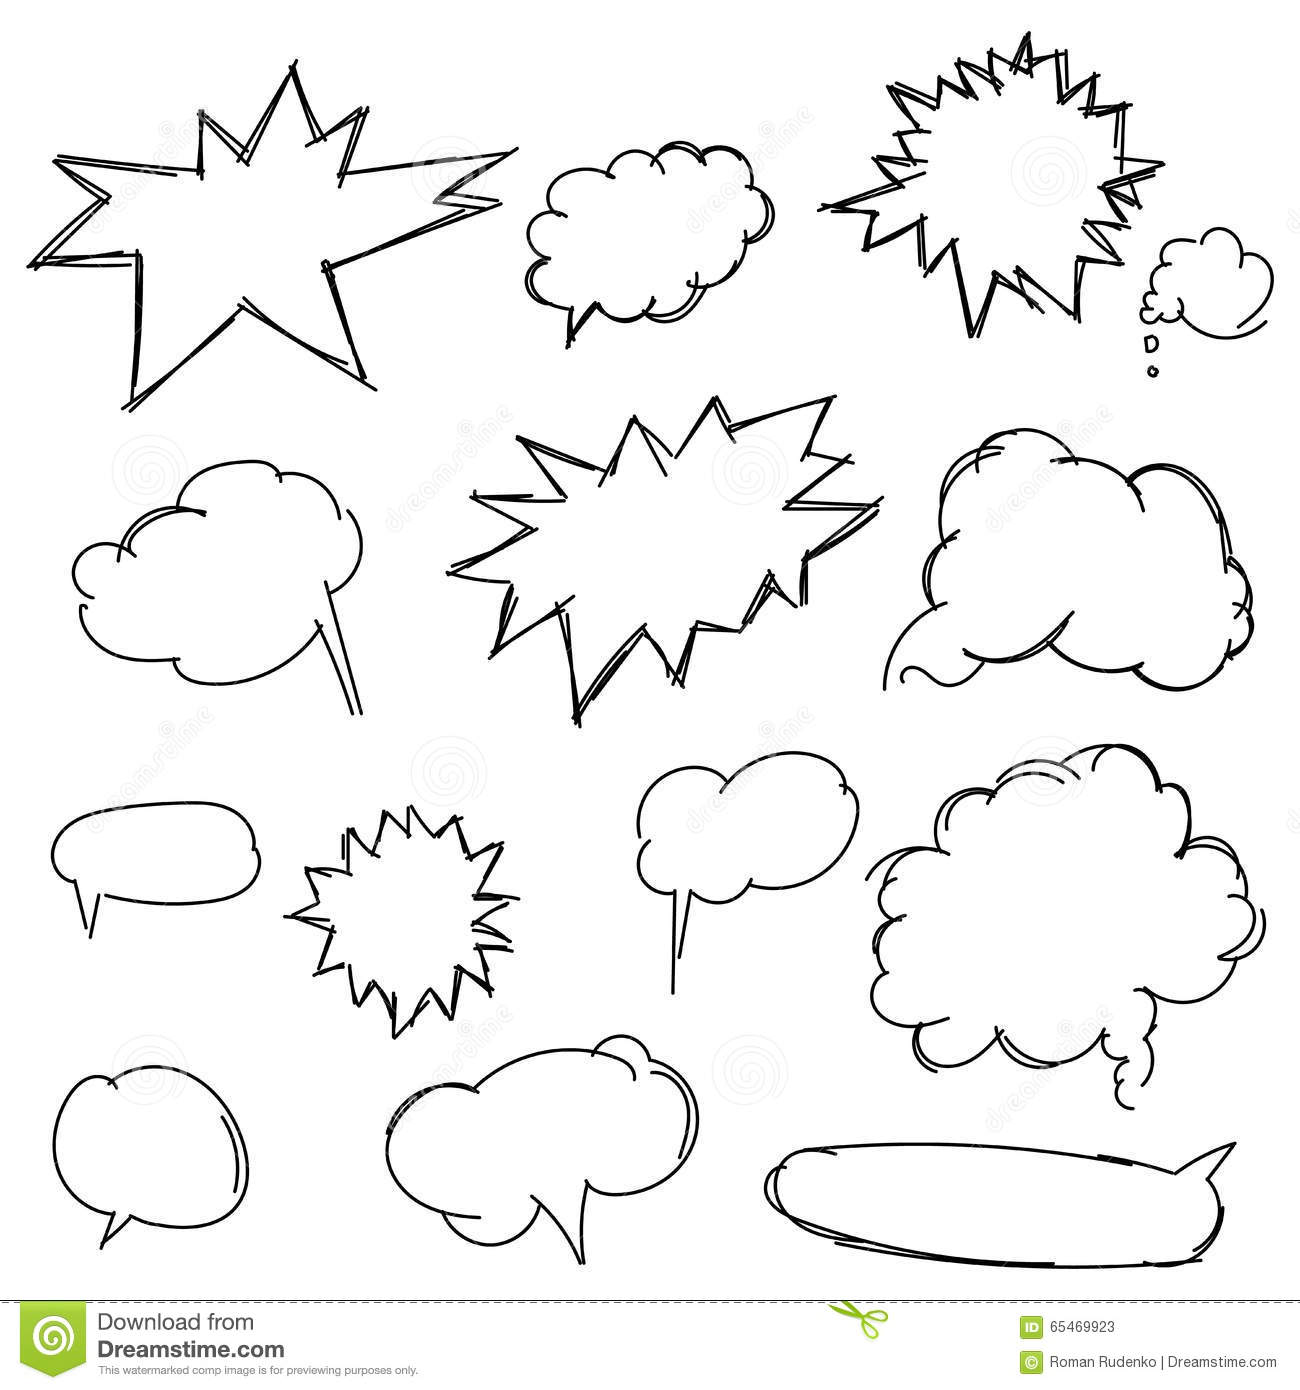 Line Drawing Shapes : Set doodle shapes for message pencil sketches hand drawn